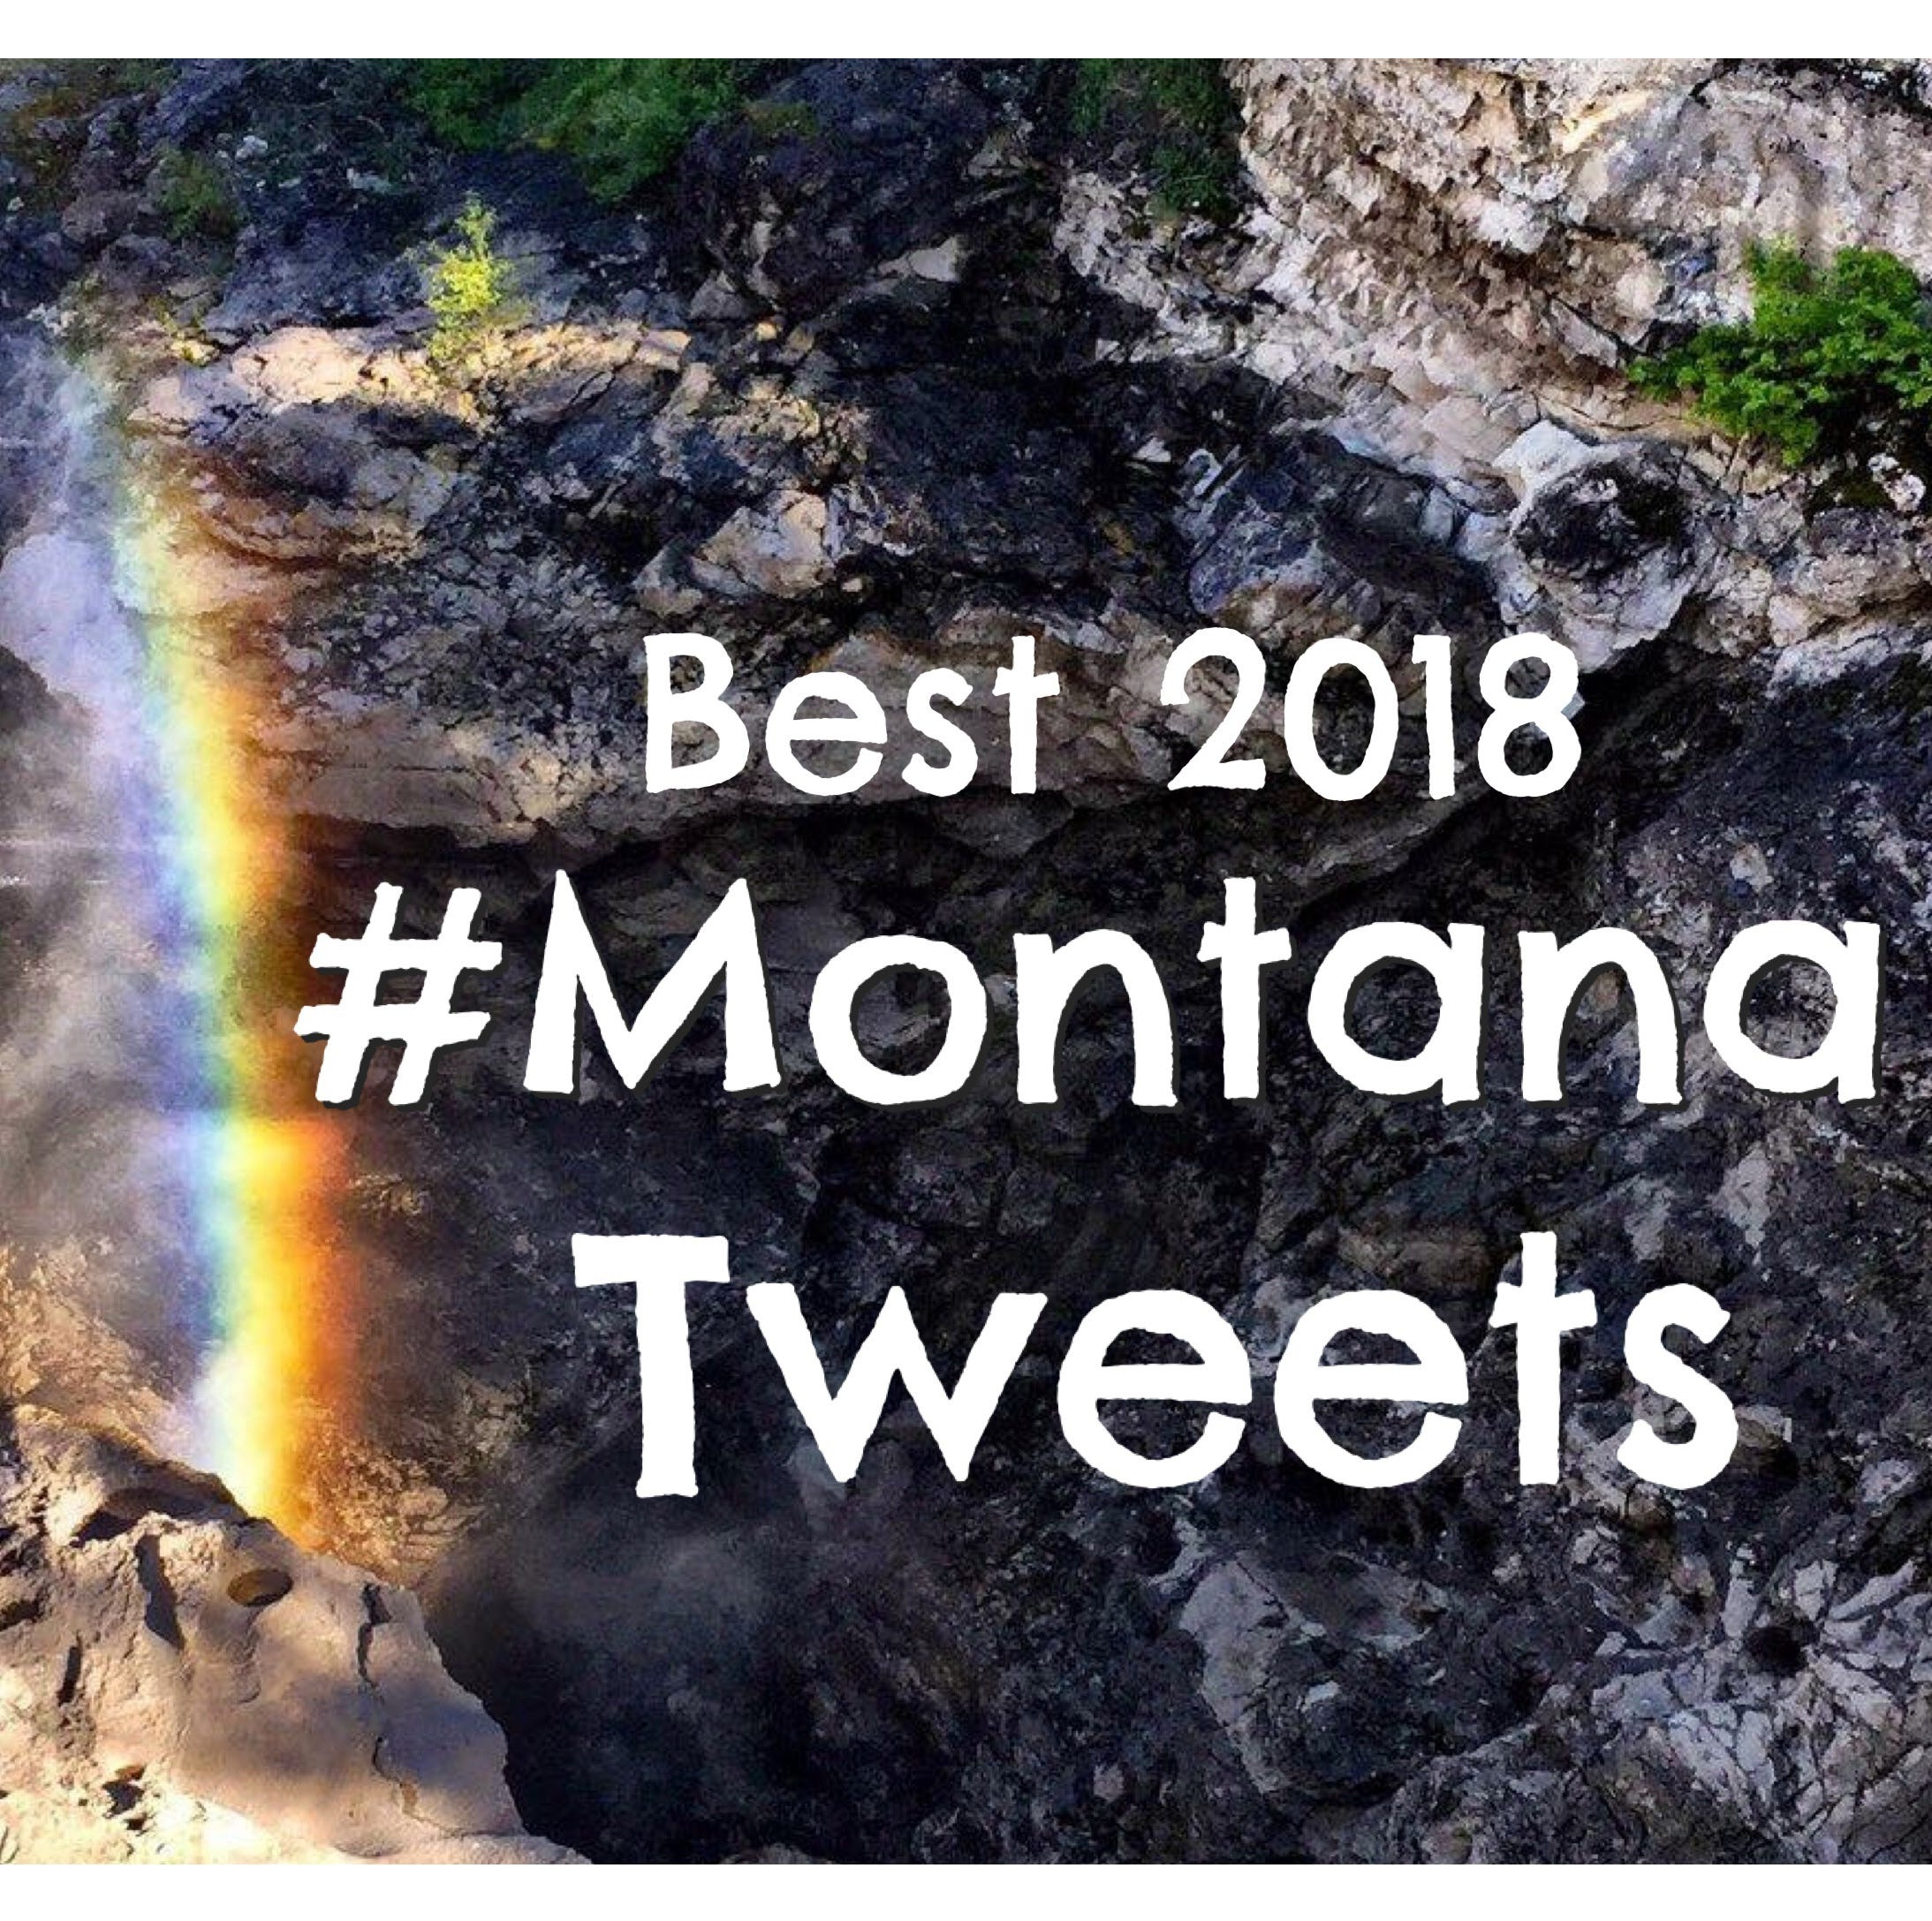 Best #Montana tweets of 2018